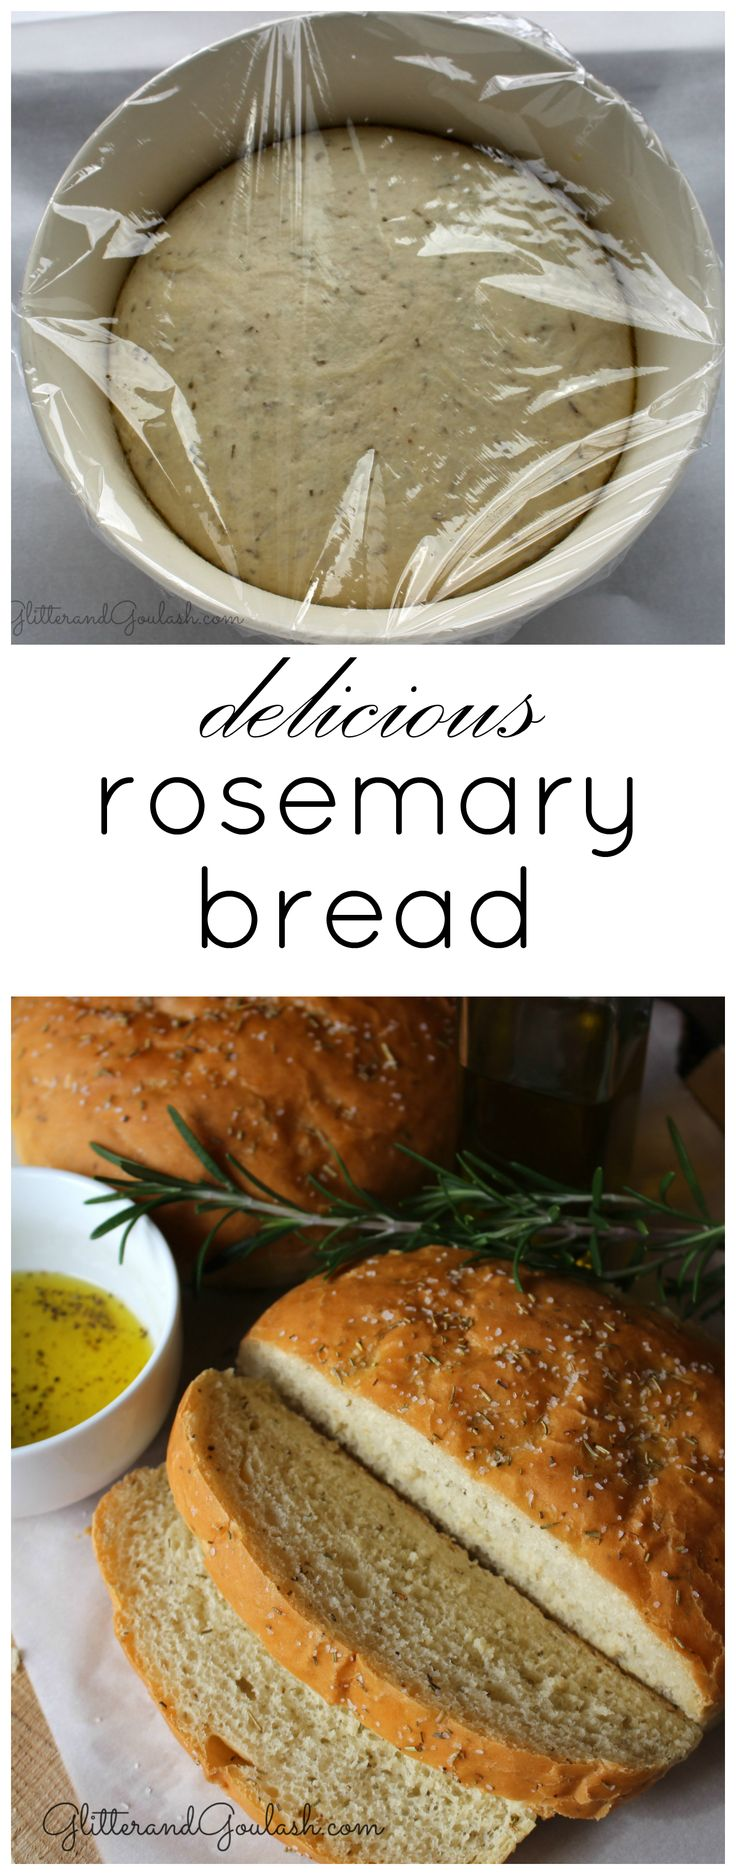 Copycat Macaroni Grill Rosemary Bread- Oh my gosh this was the best rosemary bread recipe i've tried! My whole family devoured it for dinner, goes great with soup as a side.